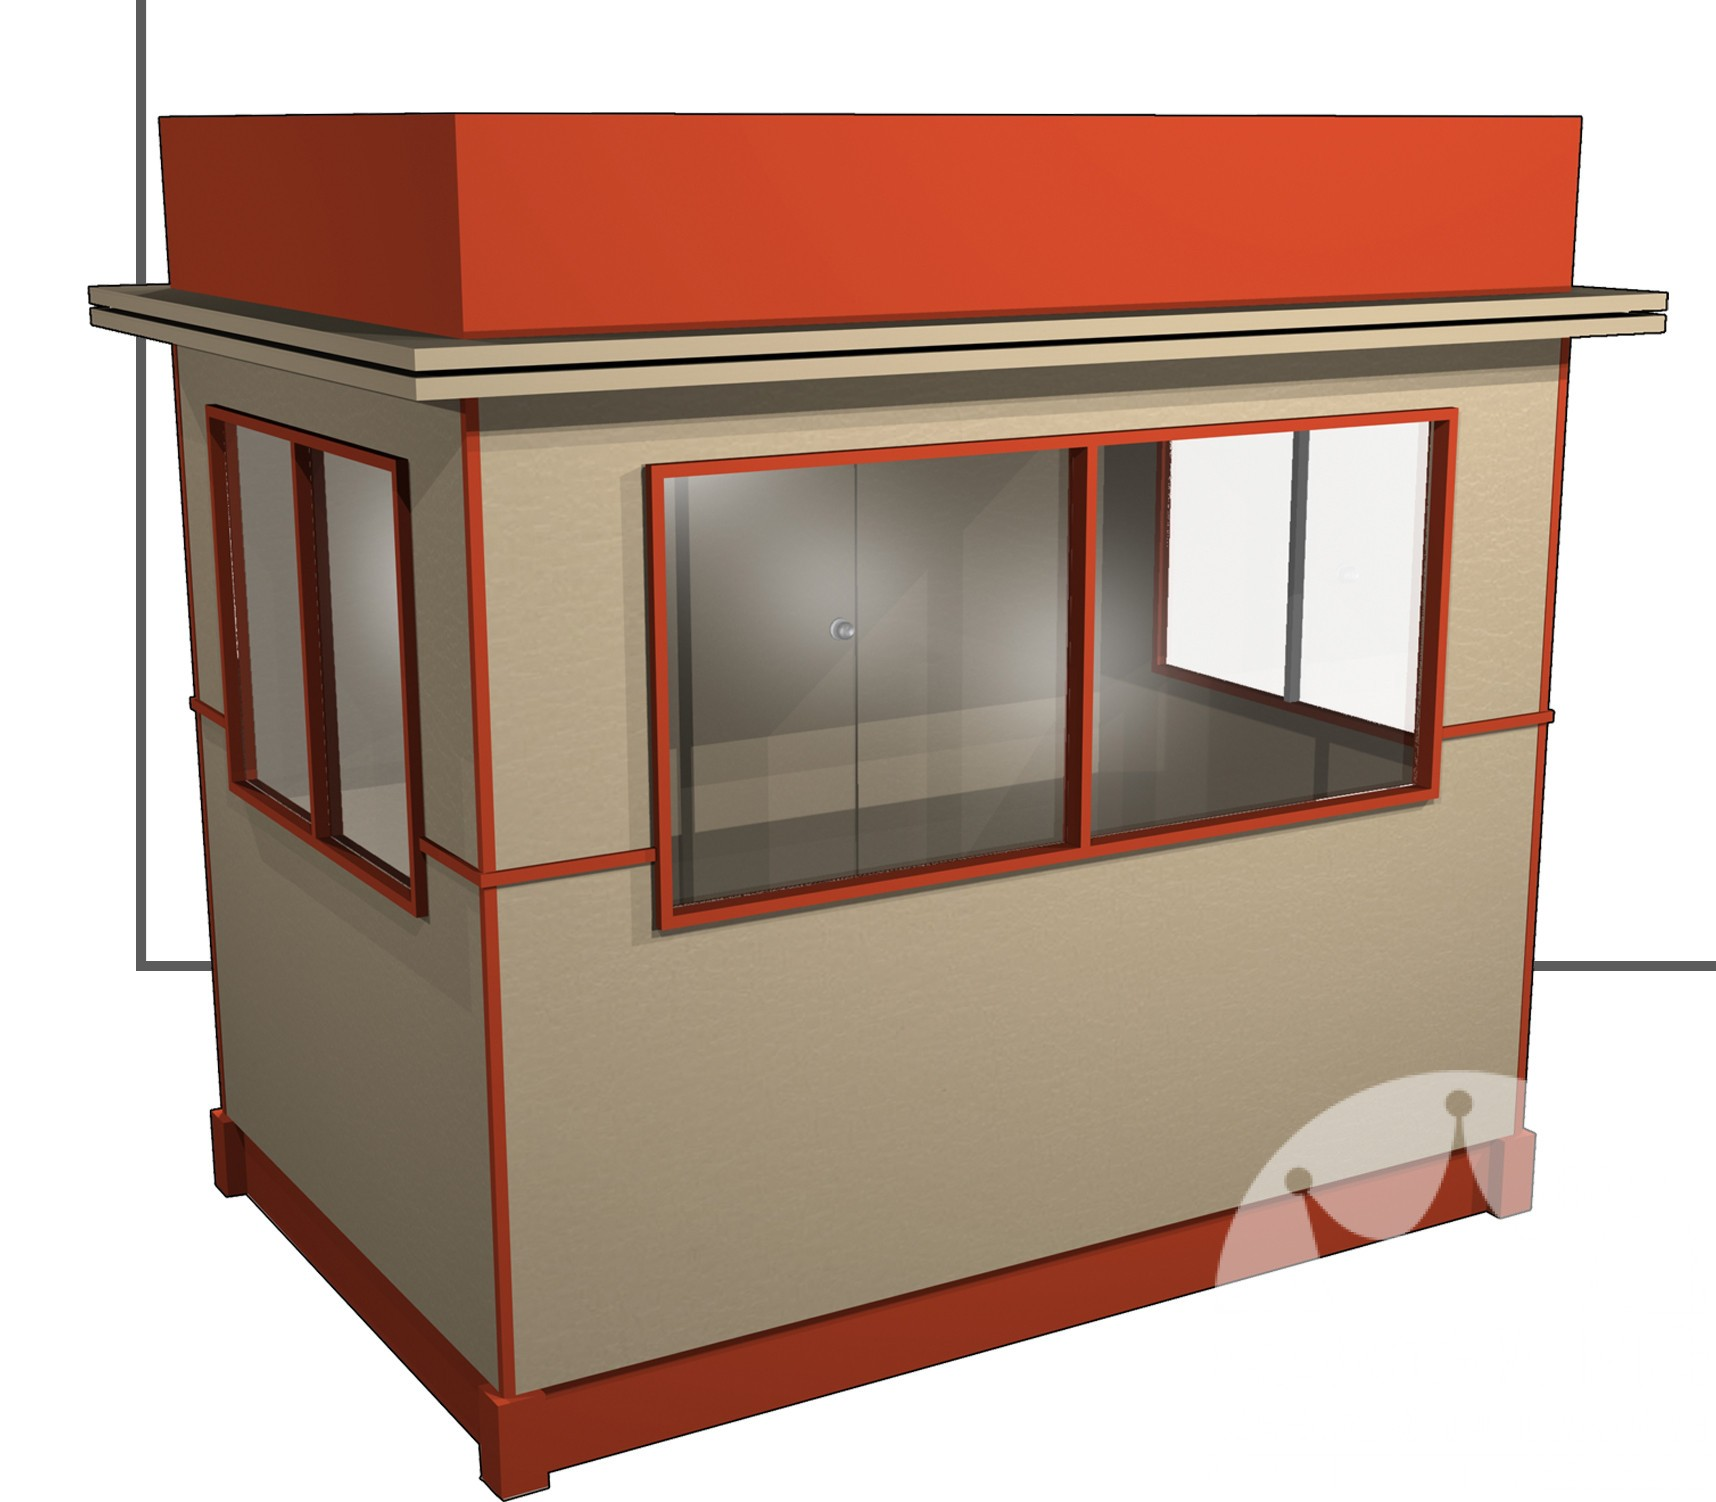 Drive thru coffee stands for sale shop designs supply for Garden kiosk designs